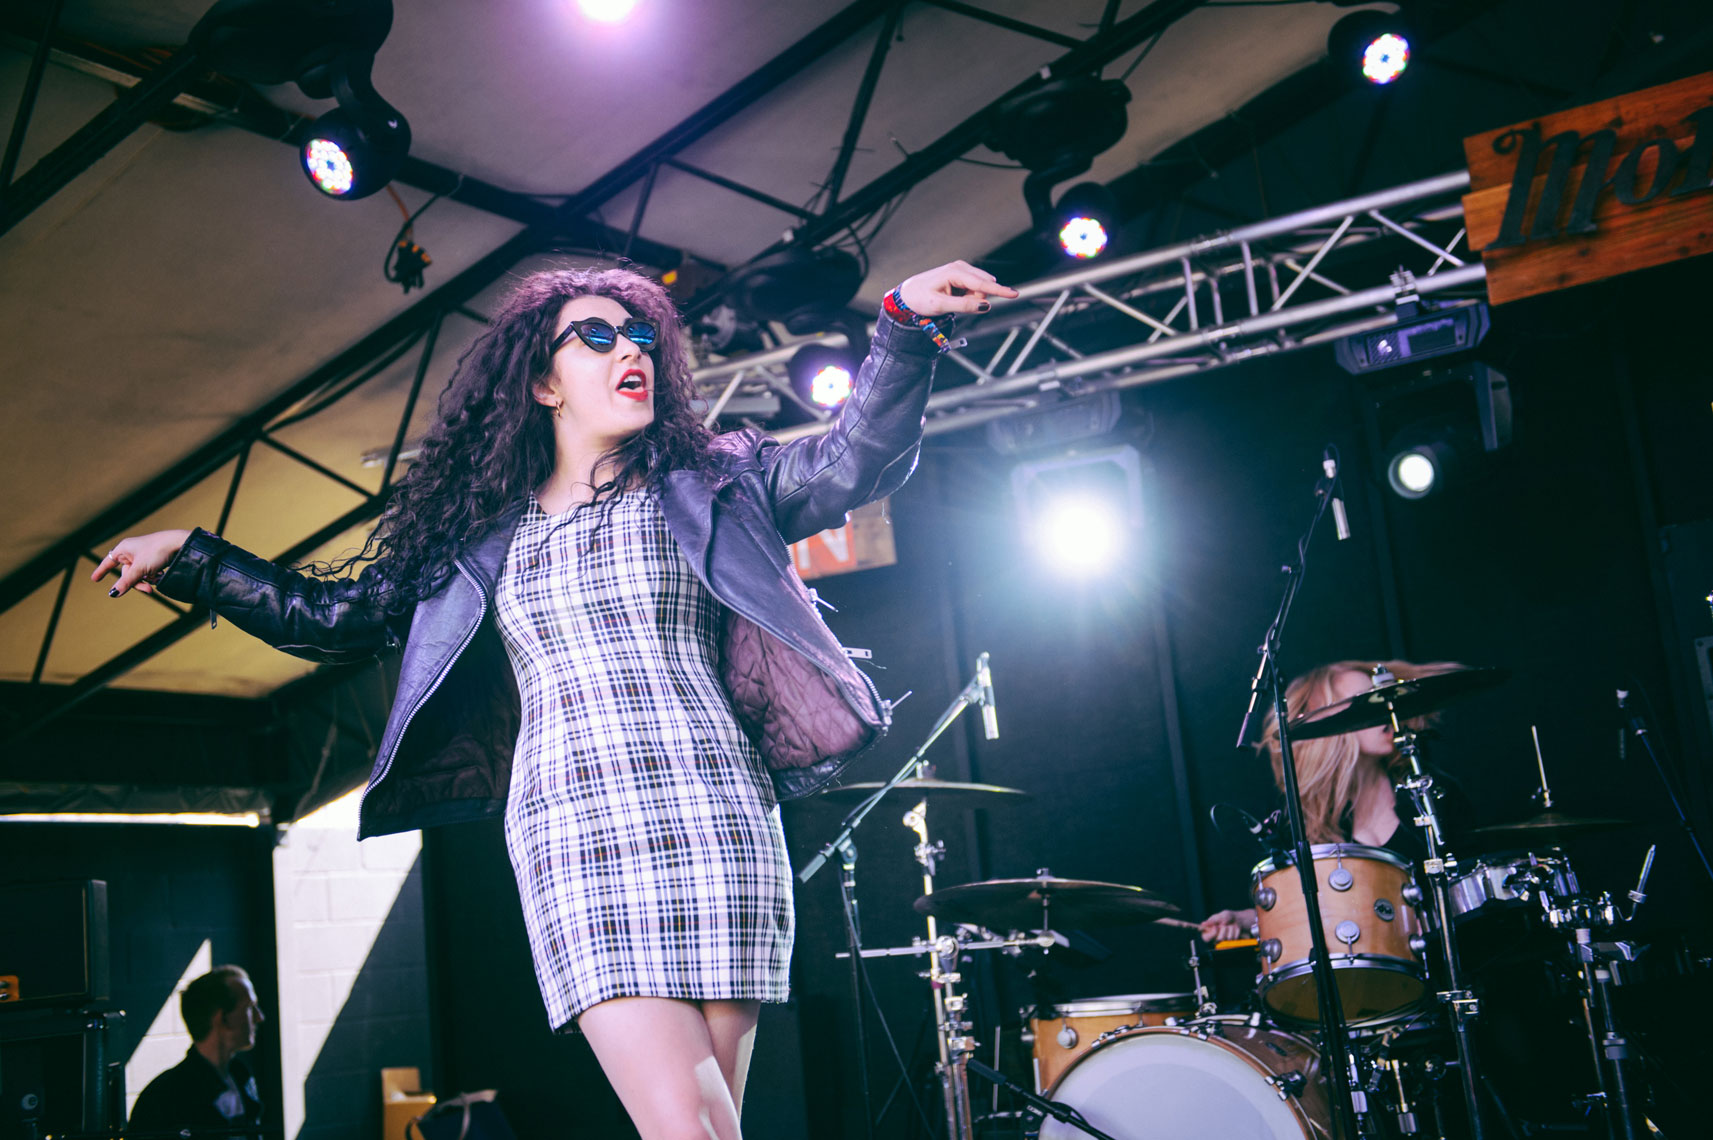 Charlie-XCX-performs-at-The-Mohawk-for-the-SPIN-day-party-during-SXSW-2014